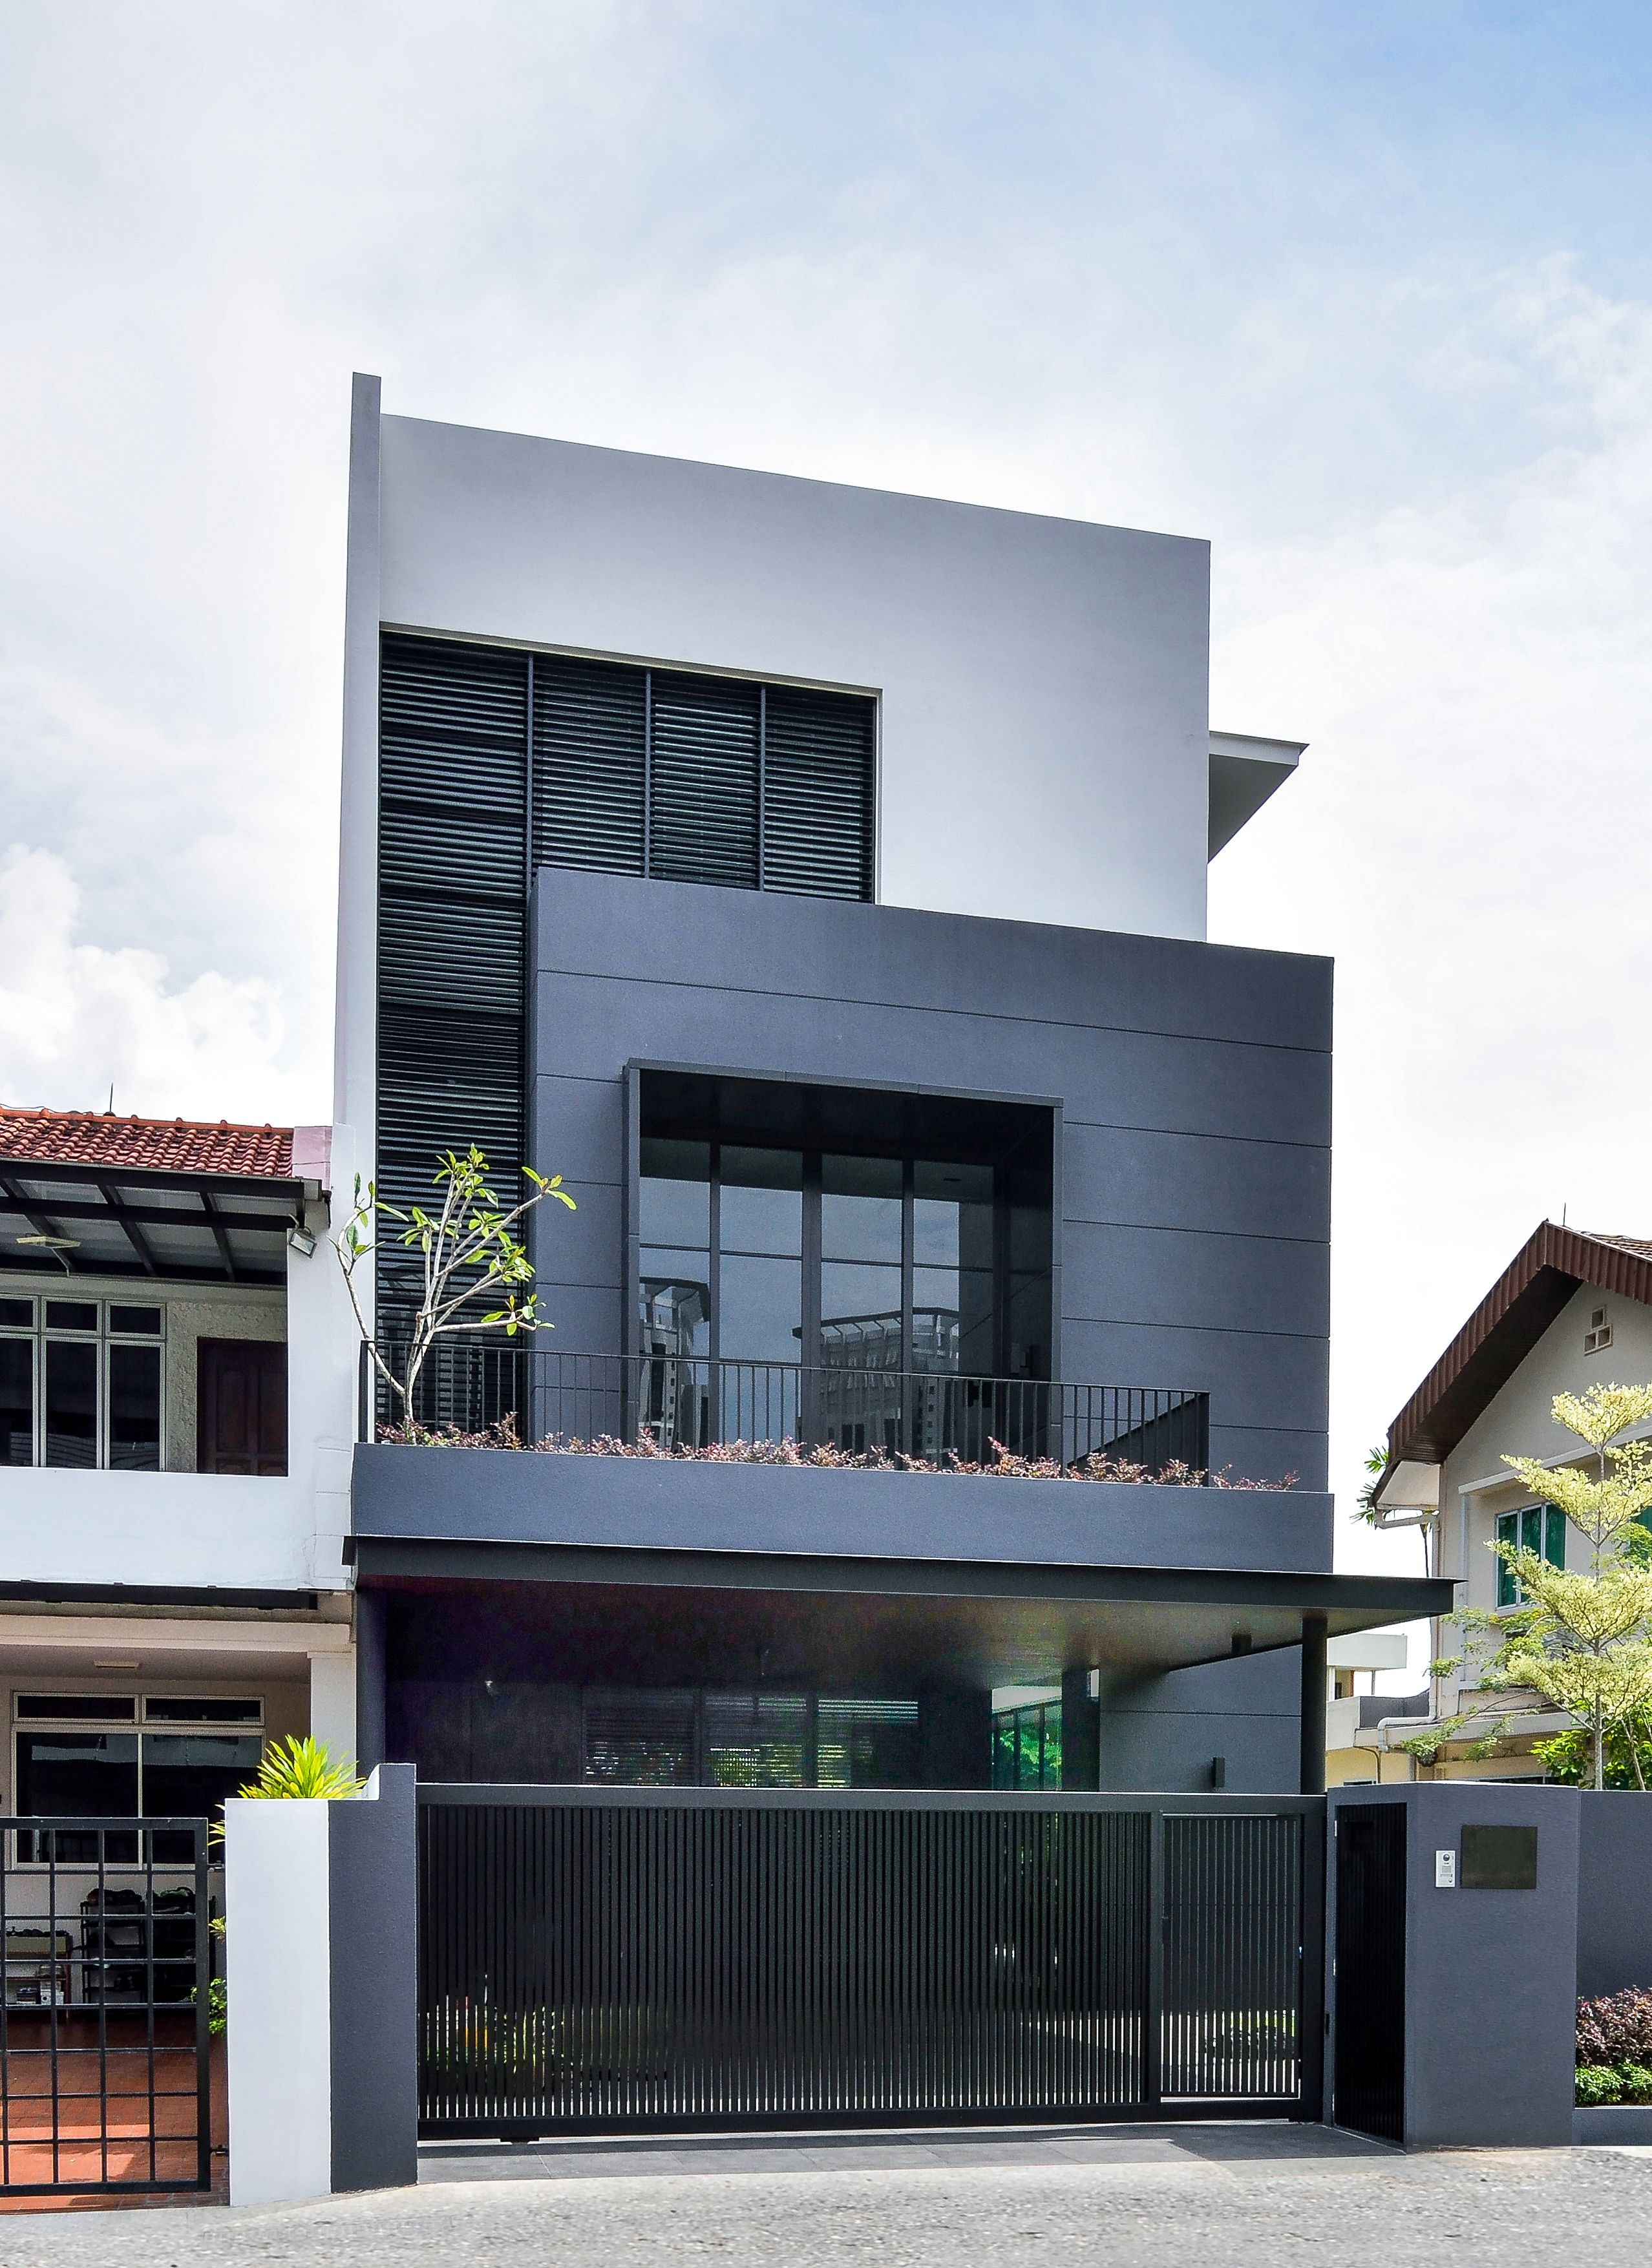 Interesting House Exterior Design In Kulai Malaysia: Our Dedicated Team Of Architects, Designers And Visualizers Bring Together A Wealth Of